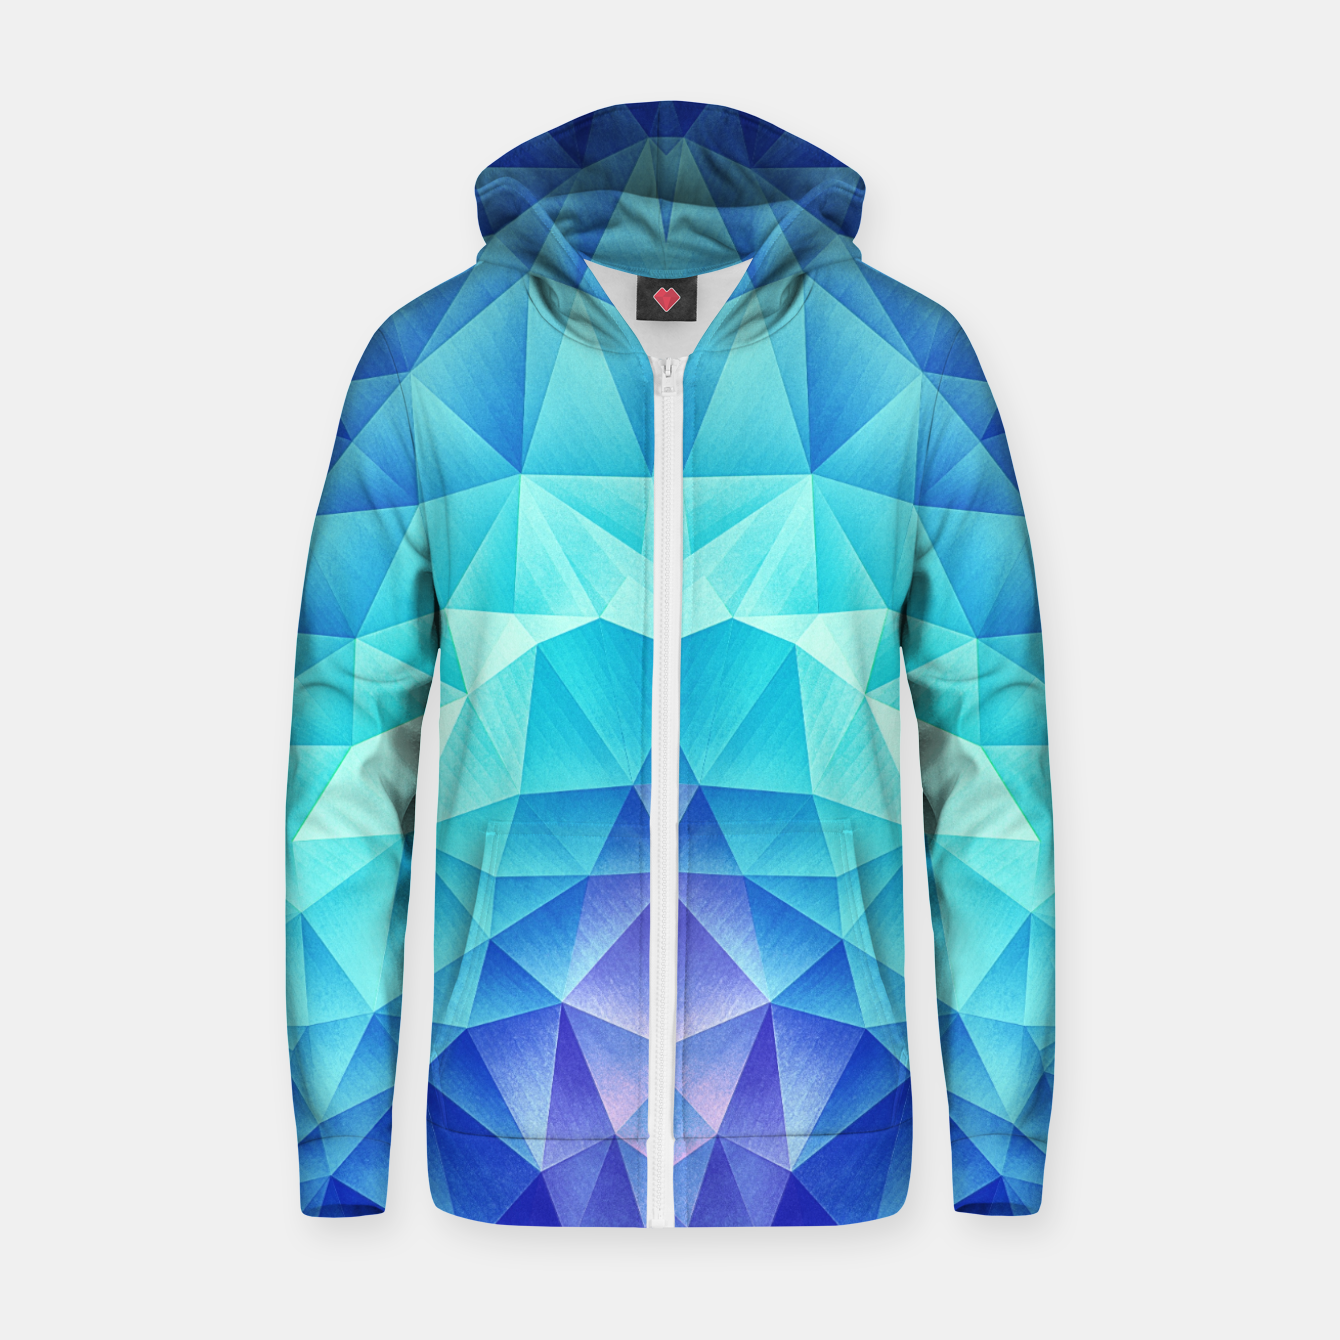 Image de Ice Blue / Abstract Polygon Crystal Cubism Low Poly Triangle Design Zip up hoodie - Live Heroes